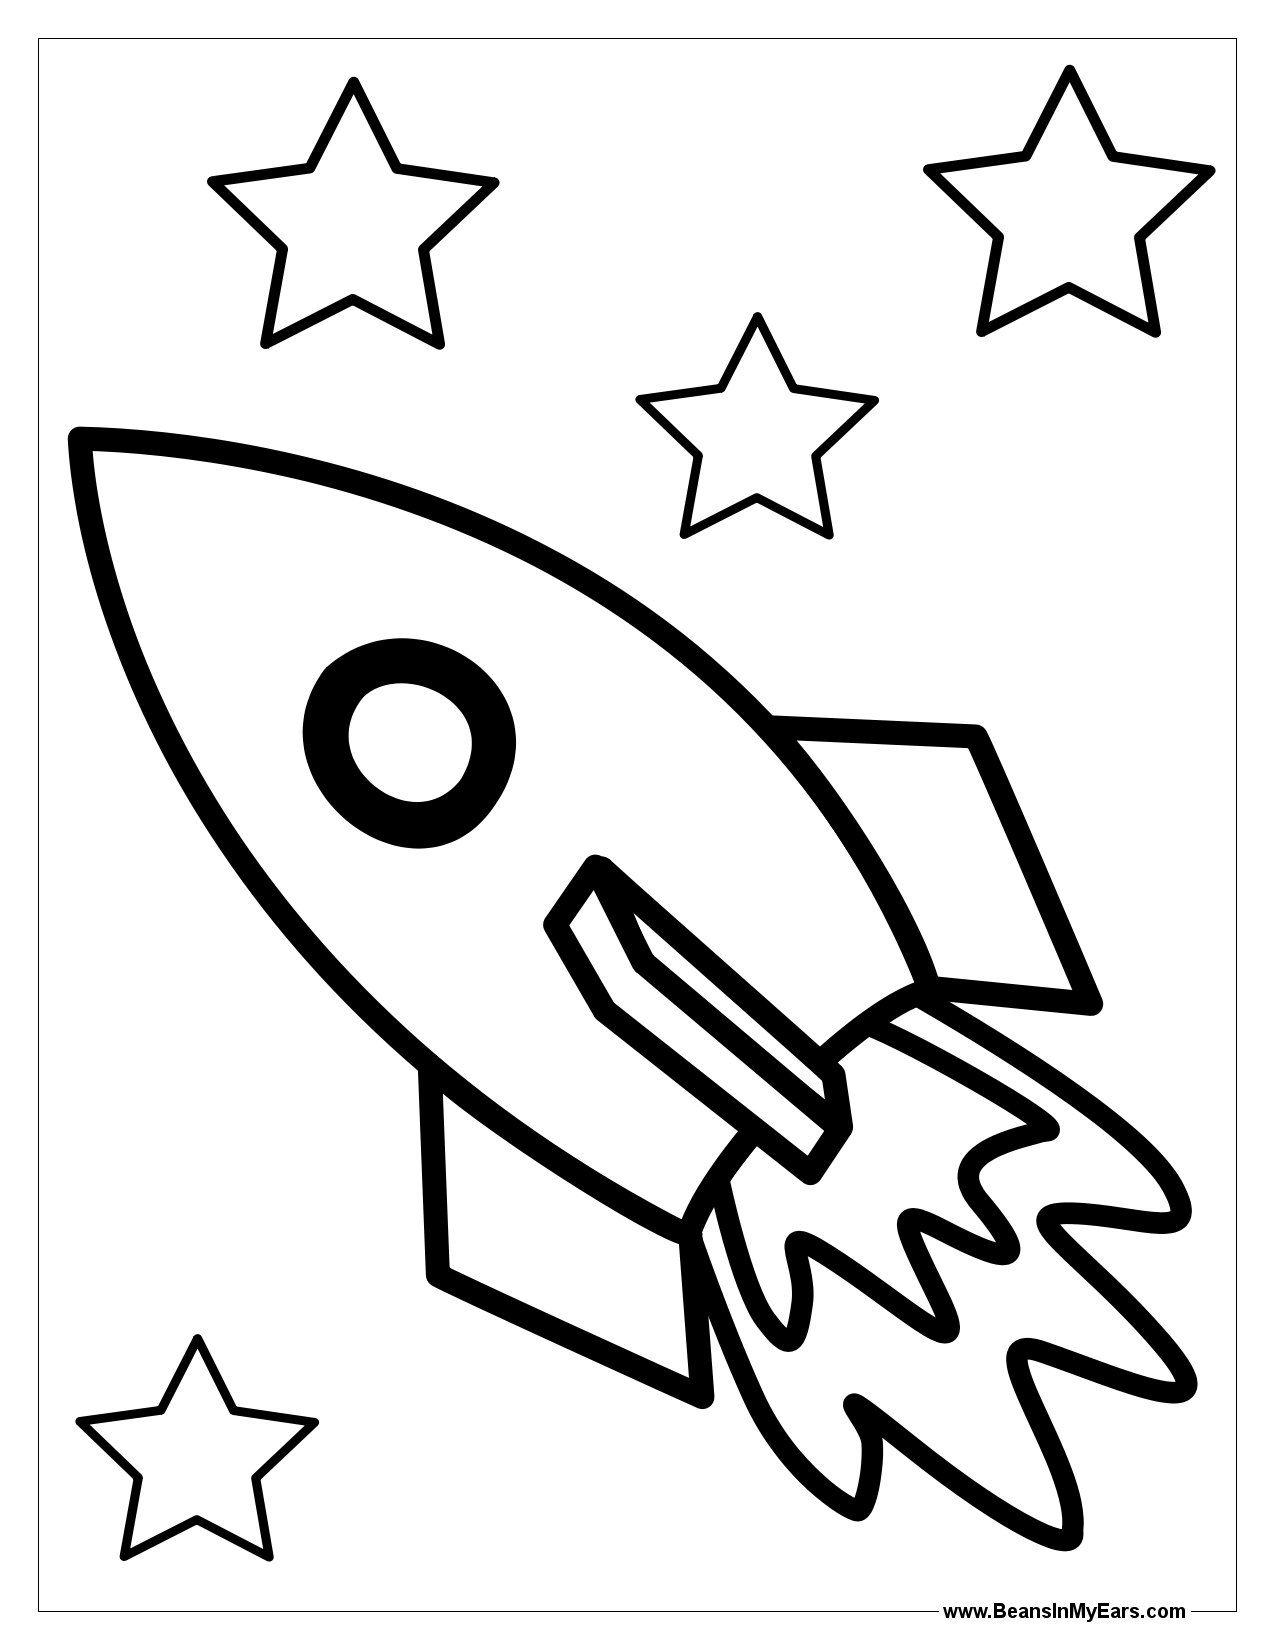 Astonishing Ideas Rocket Ship Coloring Page At Rocket Coloring